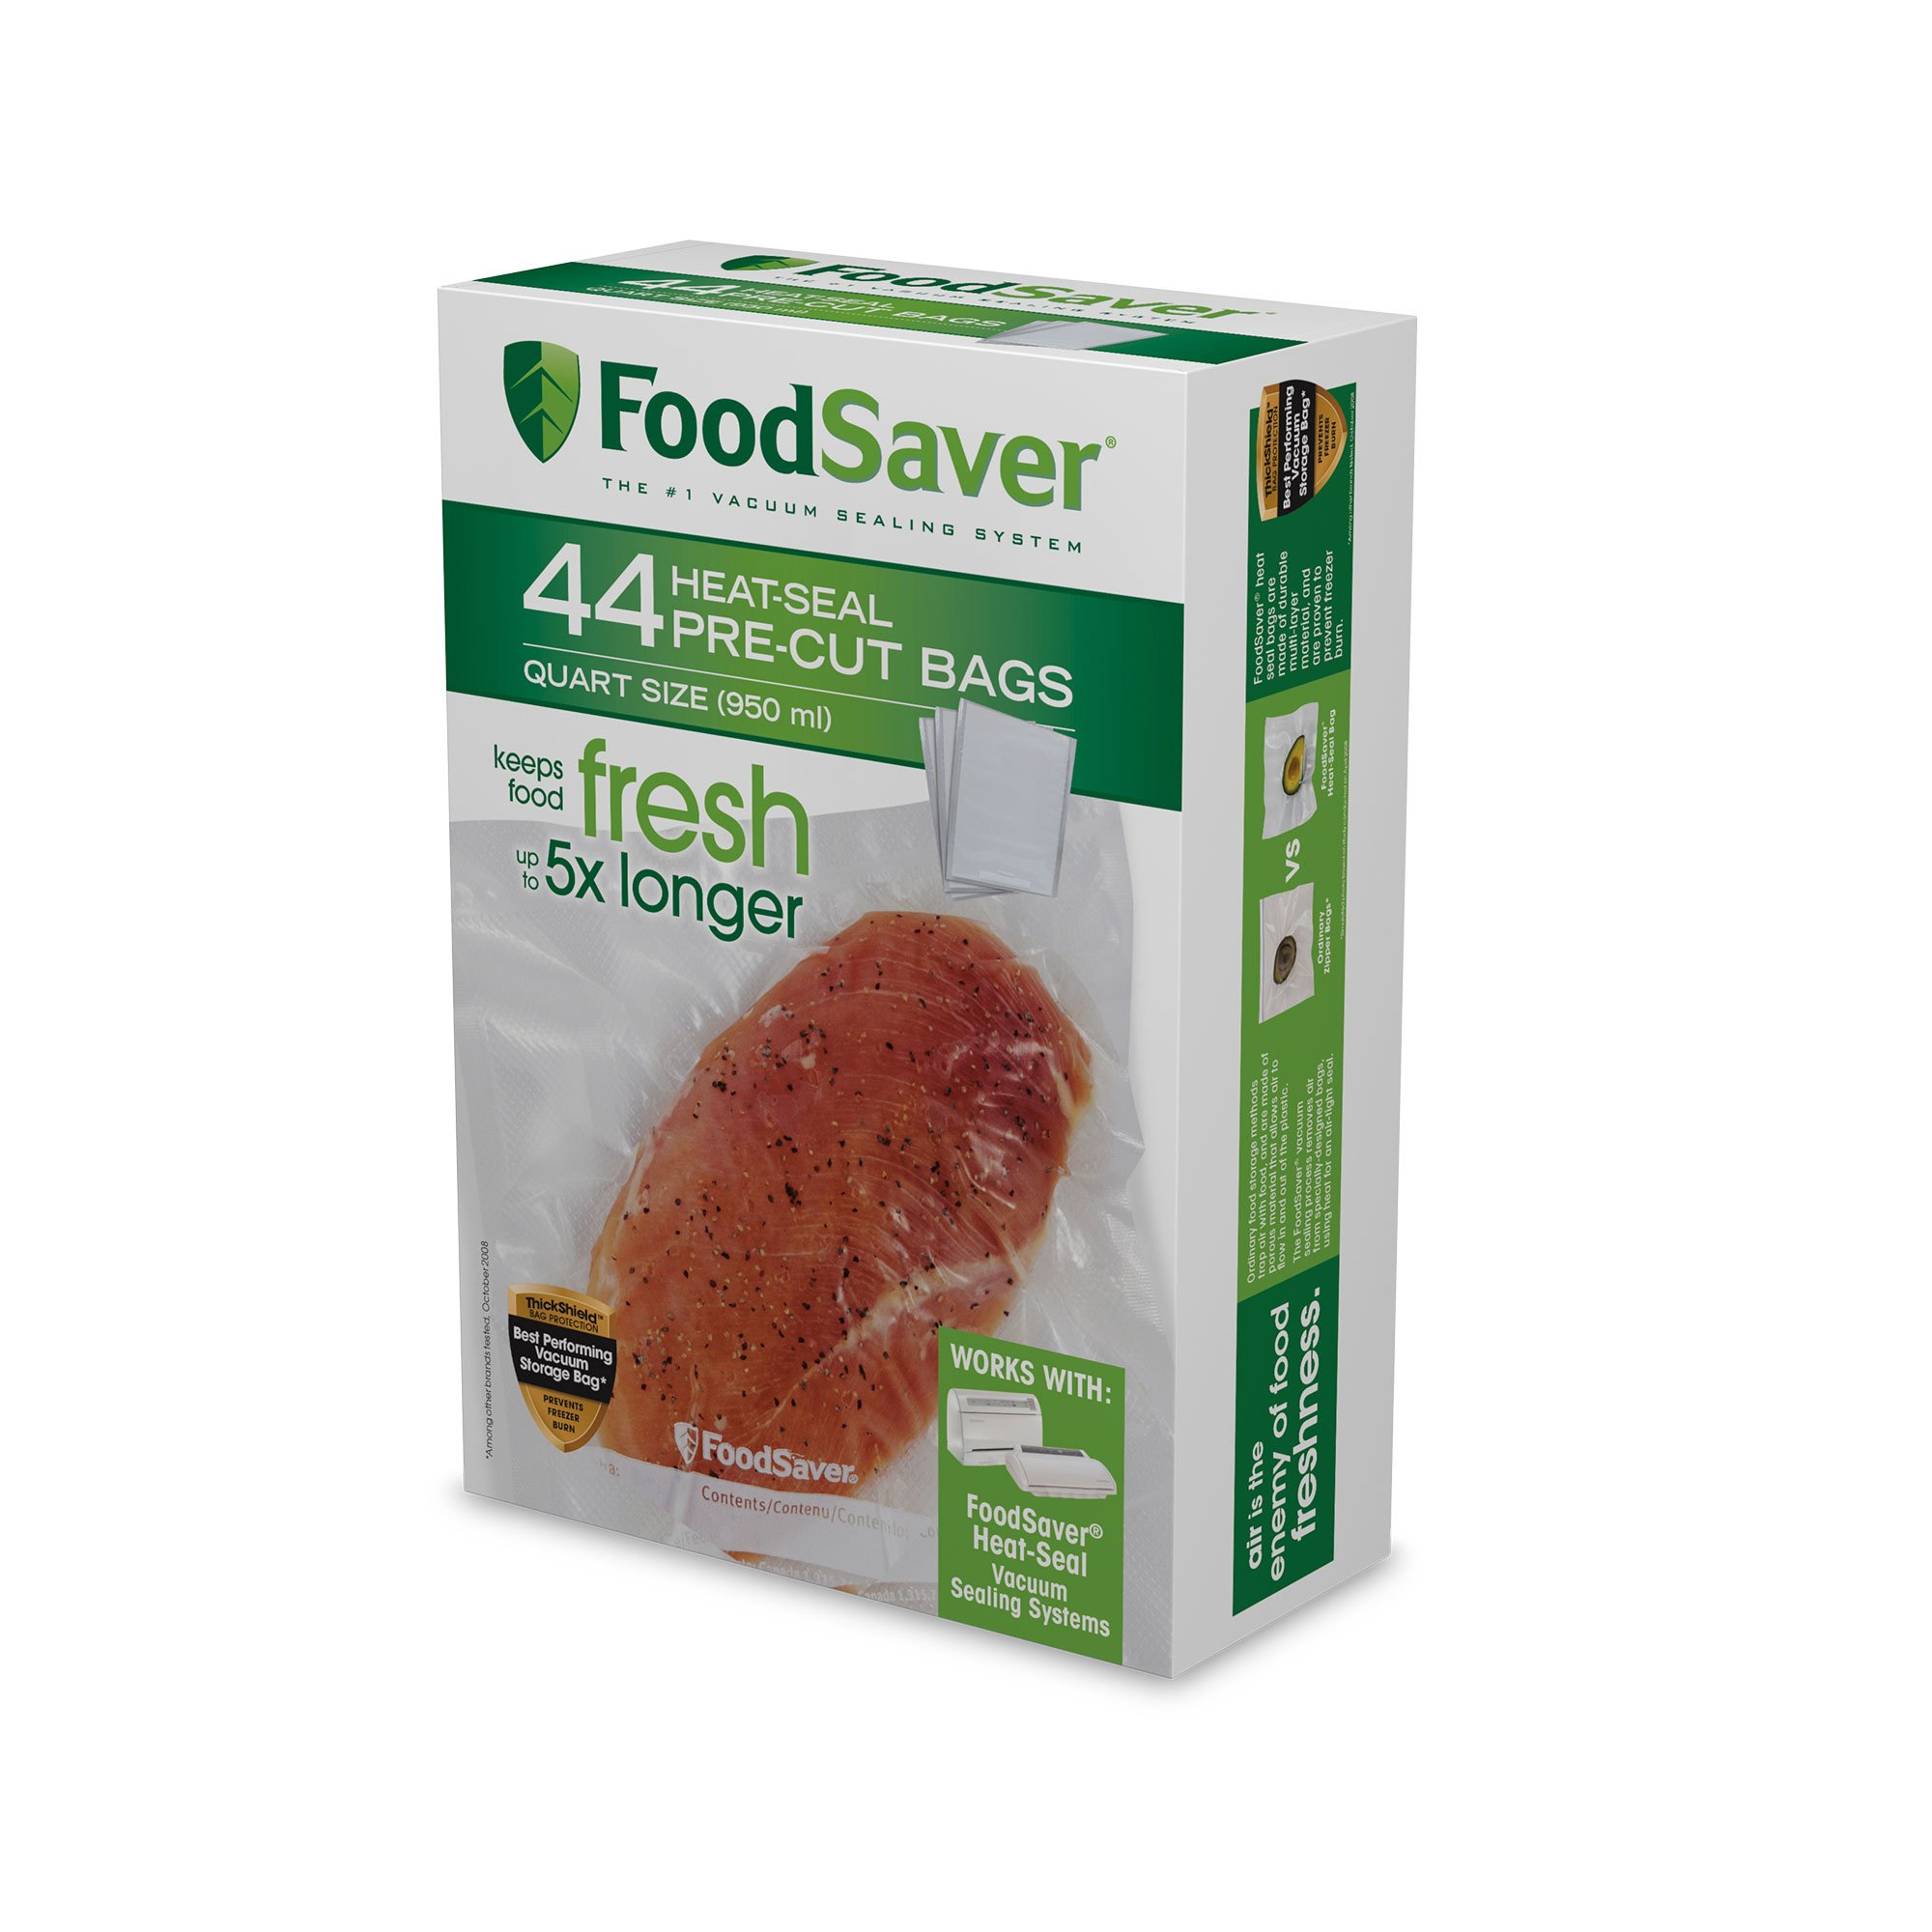 FoodSaver 1-Quart Precut Vacuum Seal Bags with BPA-Free Multilayer Construction for Food Preservation, 44 Count by FoodSaver